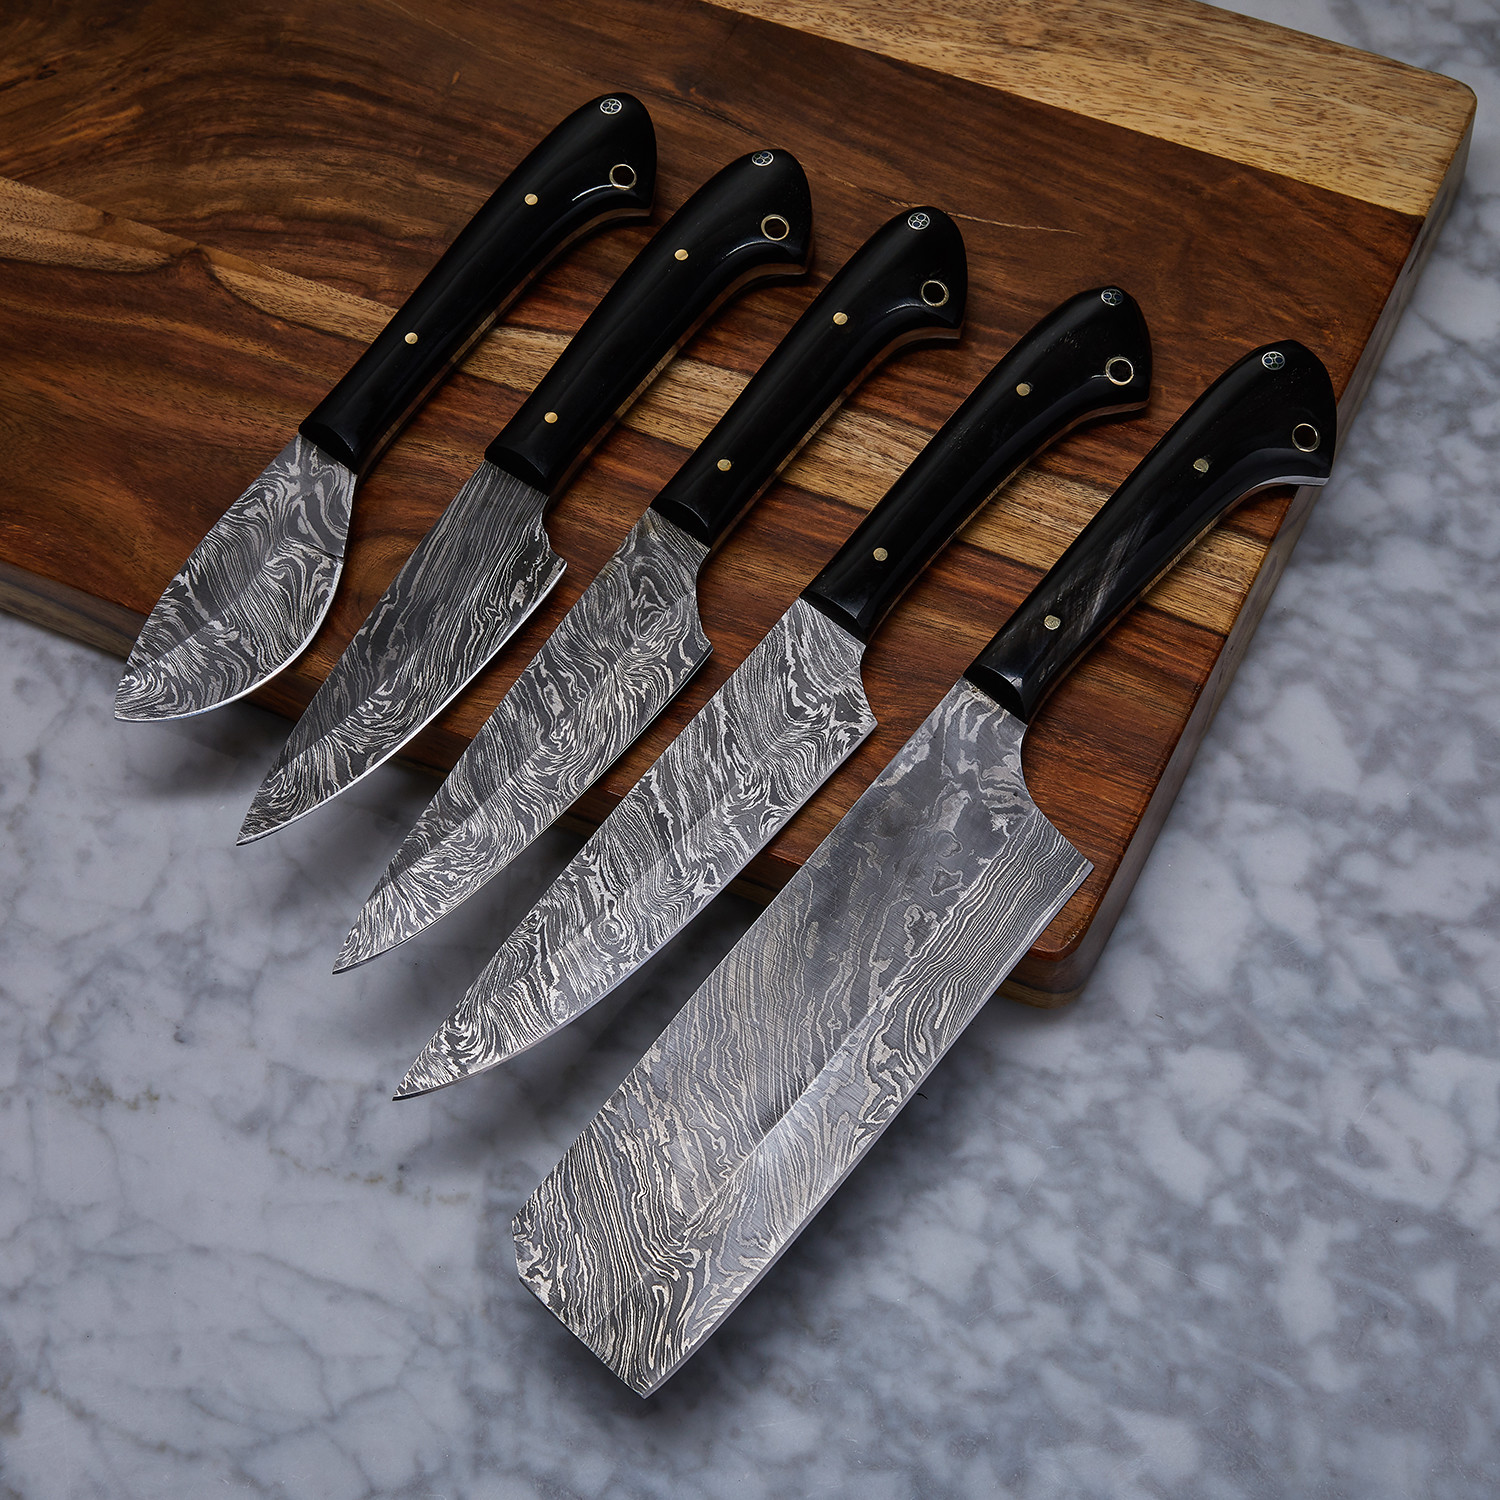 Handmade damascus kitchen knife 5 piece set kch 18 for Kitchen devil knife set 9